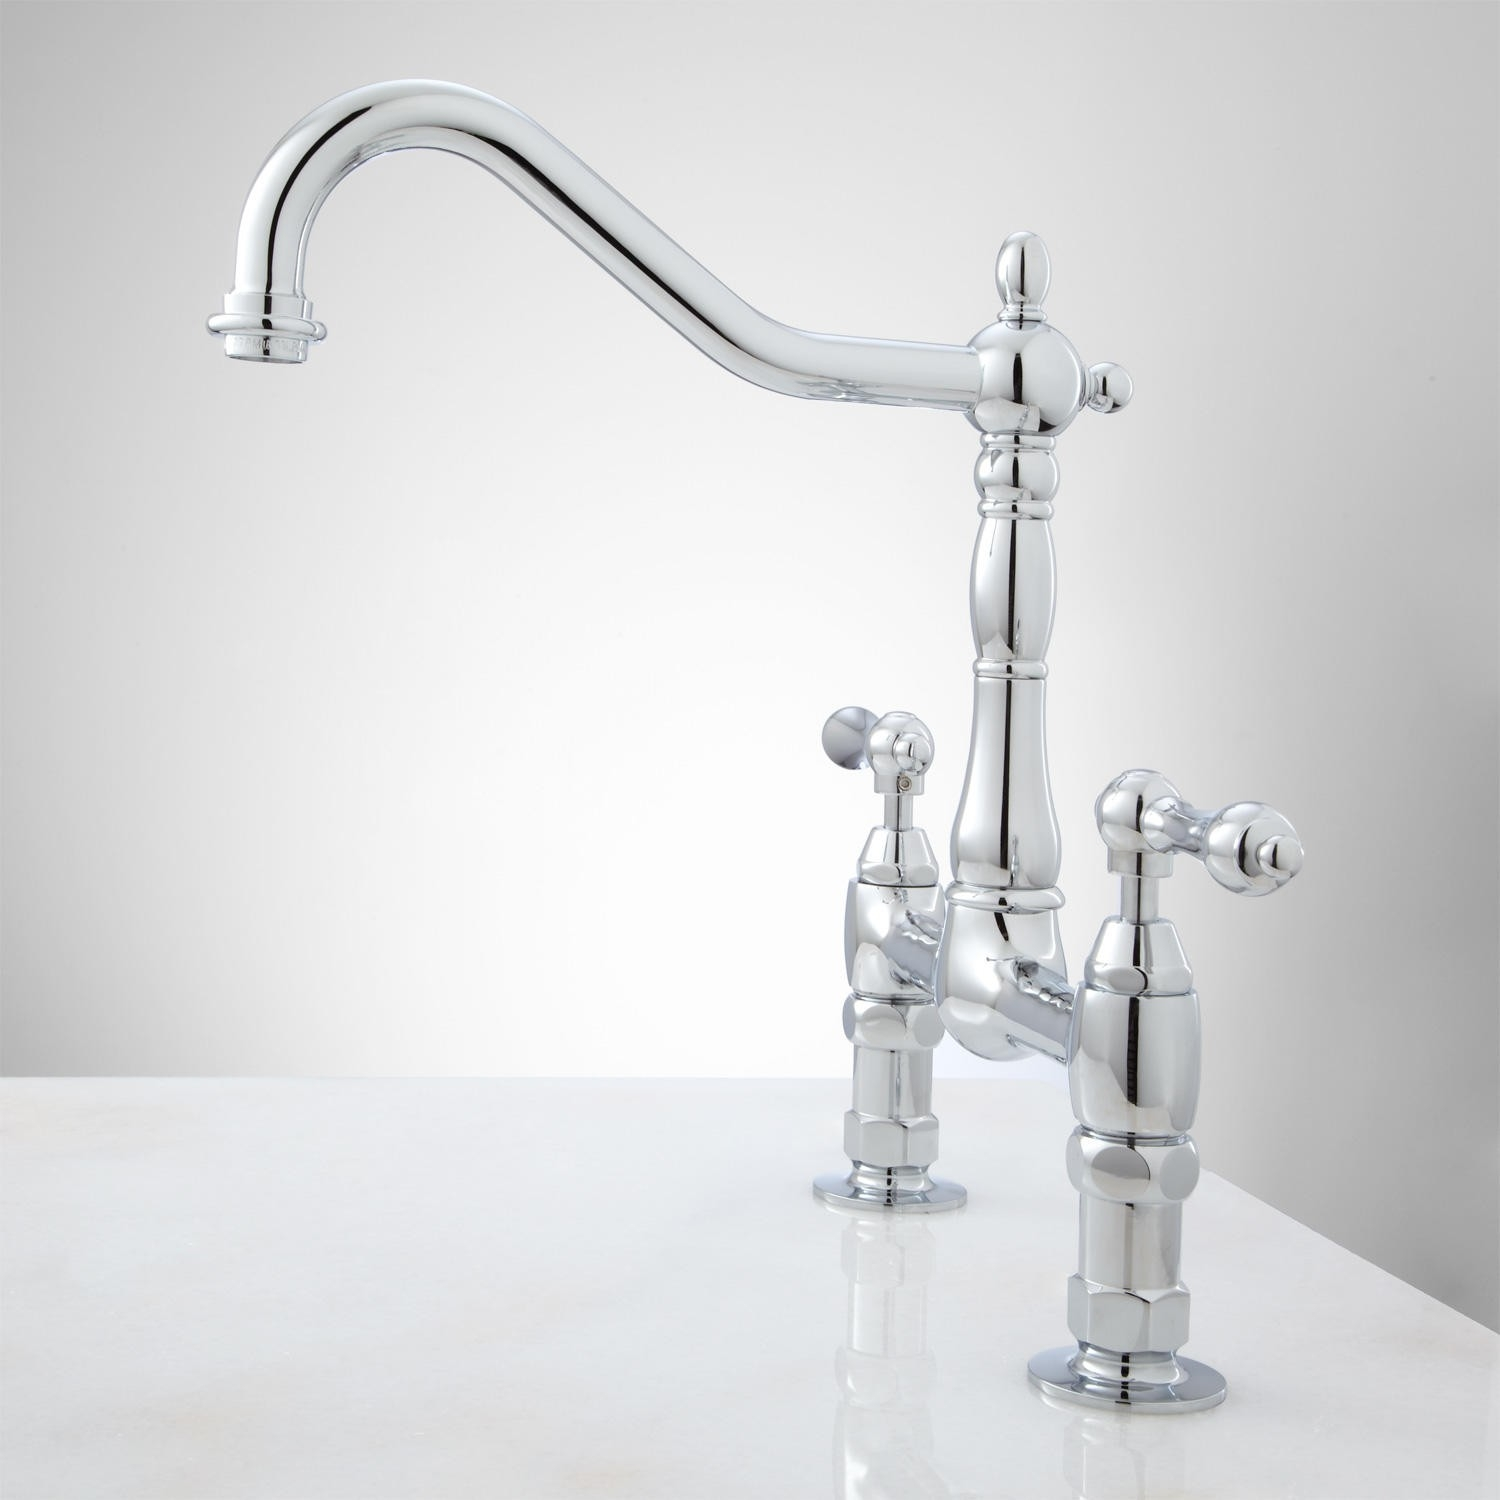 Ideas, kohler polished brass bathroom faucets kohler polished brass bathroom faucets kitchen bridge faucet for kitchen design to ease of maintenance 1500 x 1500  .